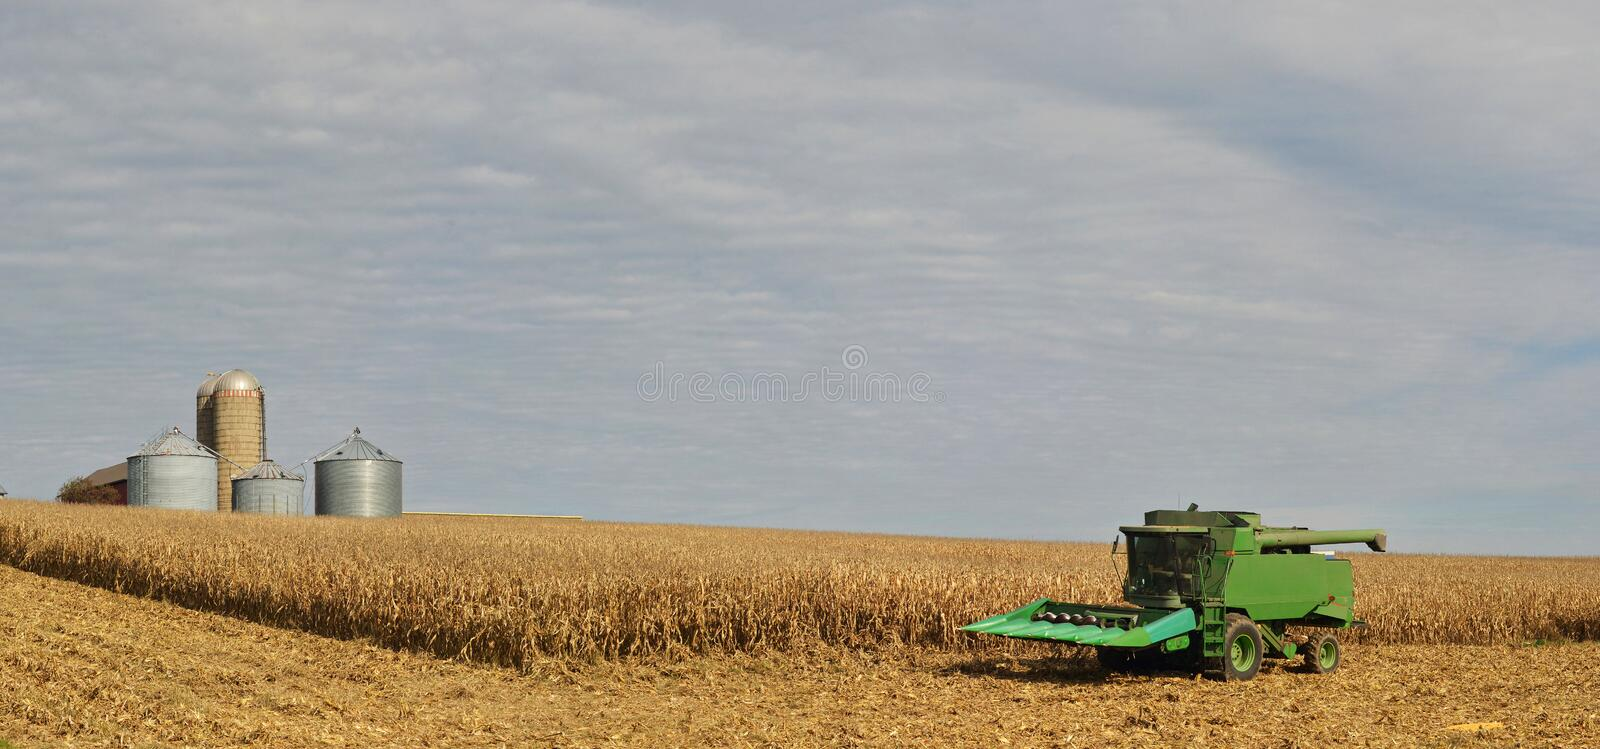 Harvester in corn field with grain bins royalty free stock photo